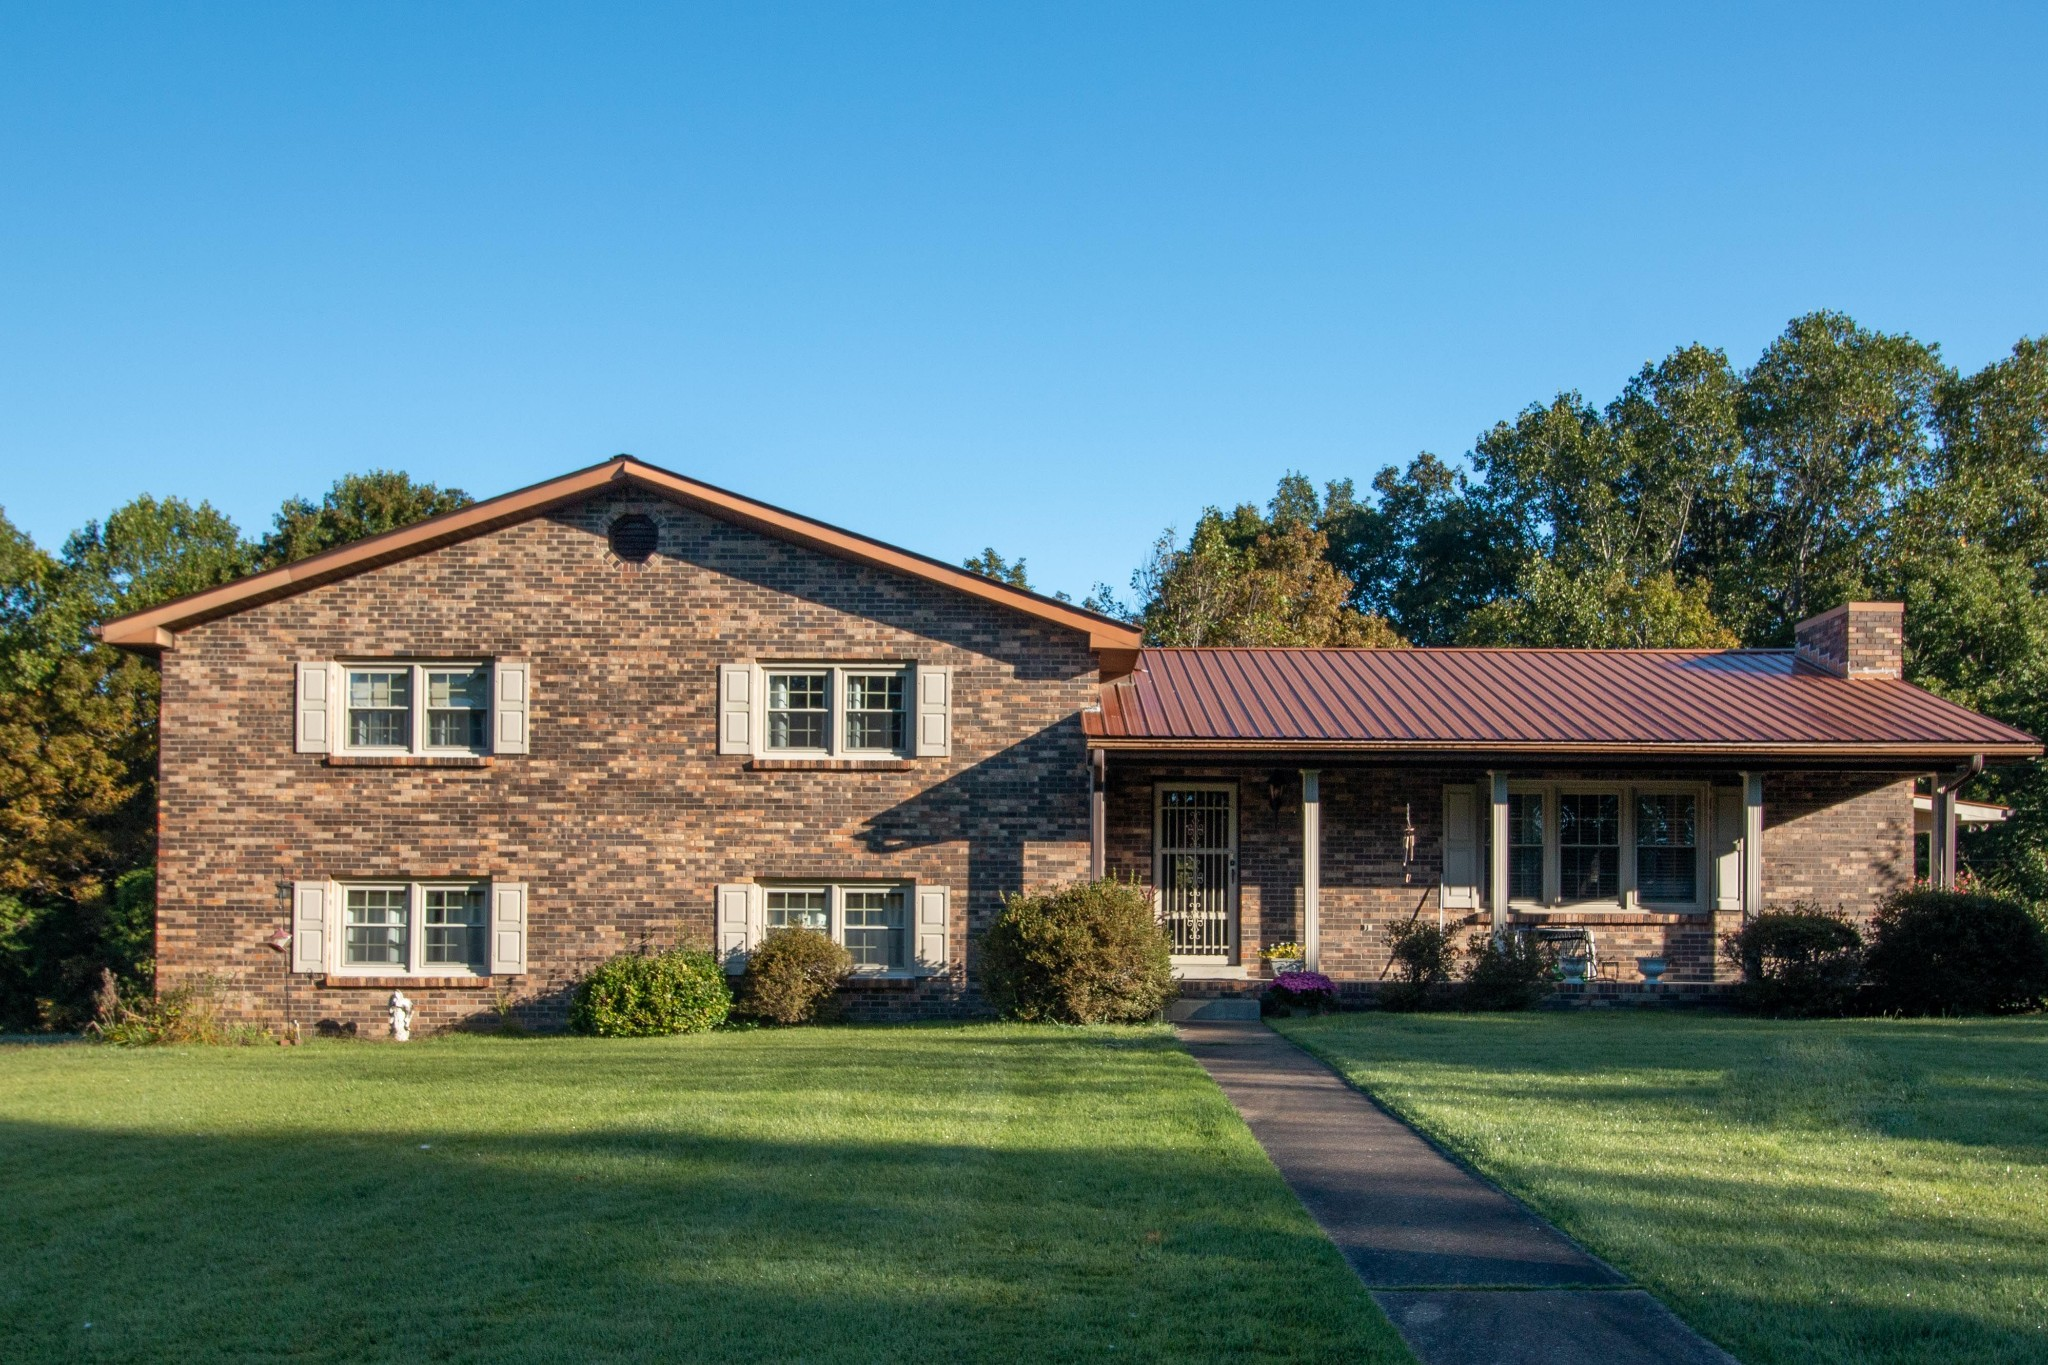 346 Hazel Dr Property Photo - Centerville, TN real estate listing